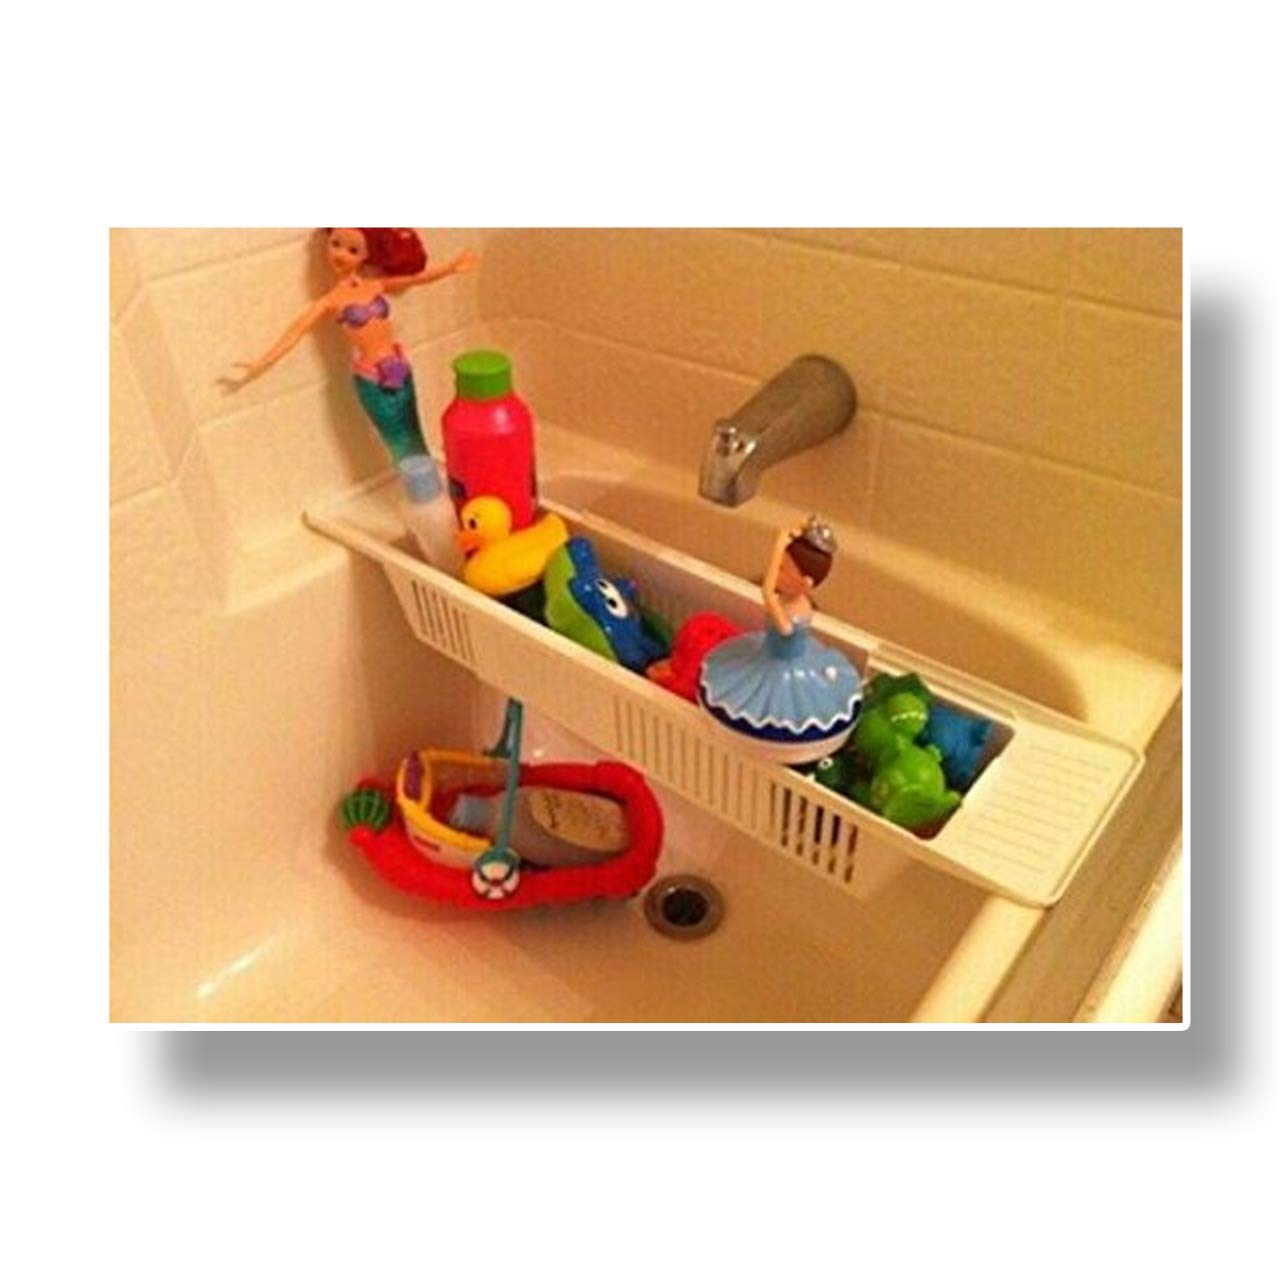 Adjustable Bathtub Storage Basket Organiser Shower Caddy Ideal For Kids Toys Holder SAFRI®